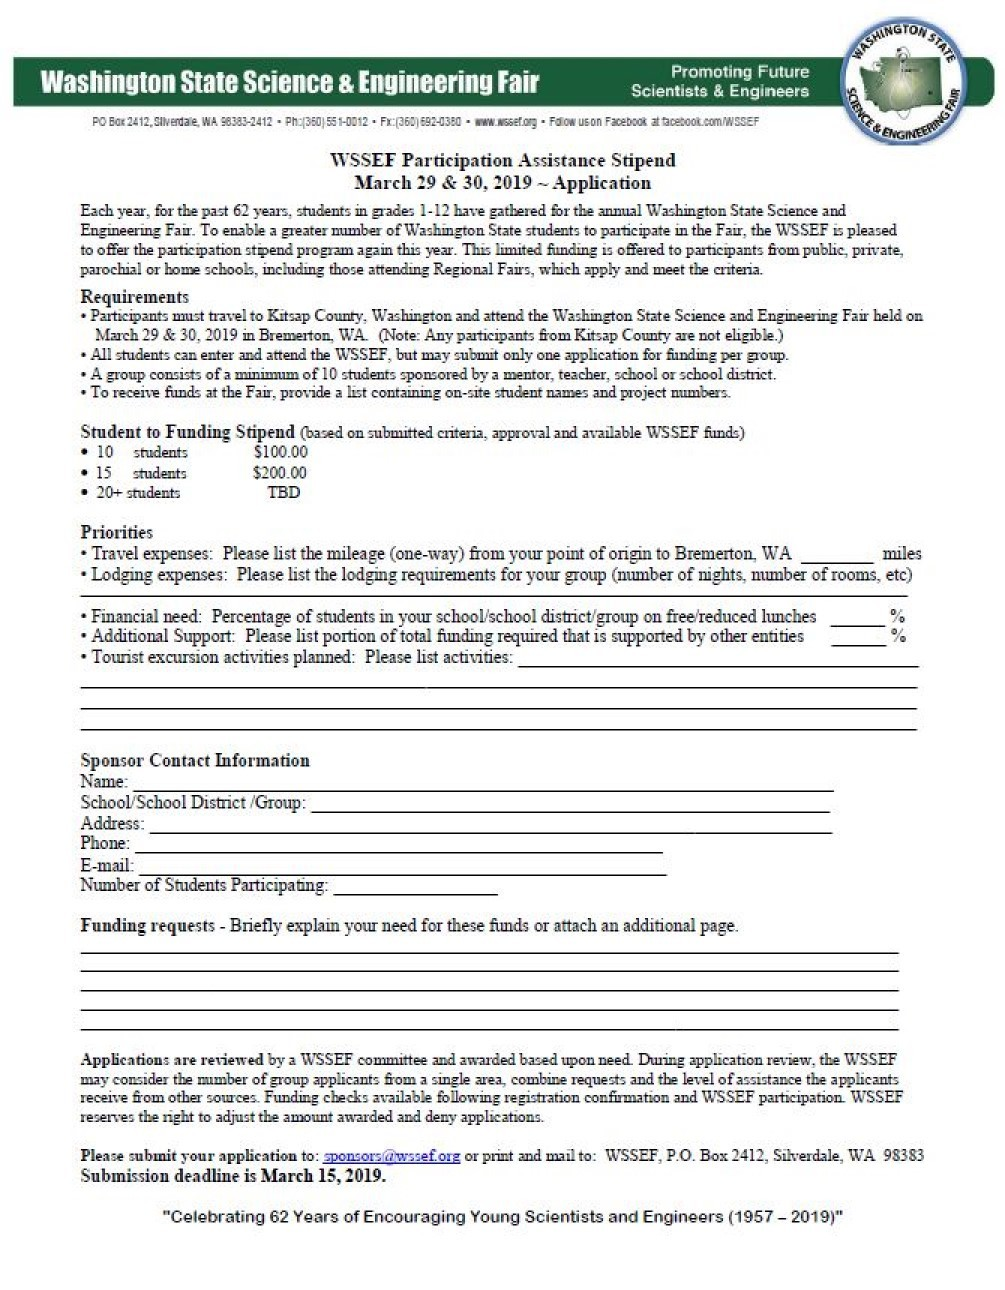 2019 WSSEF Participation Assistance Application form.jpg